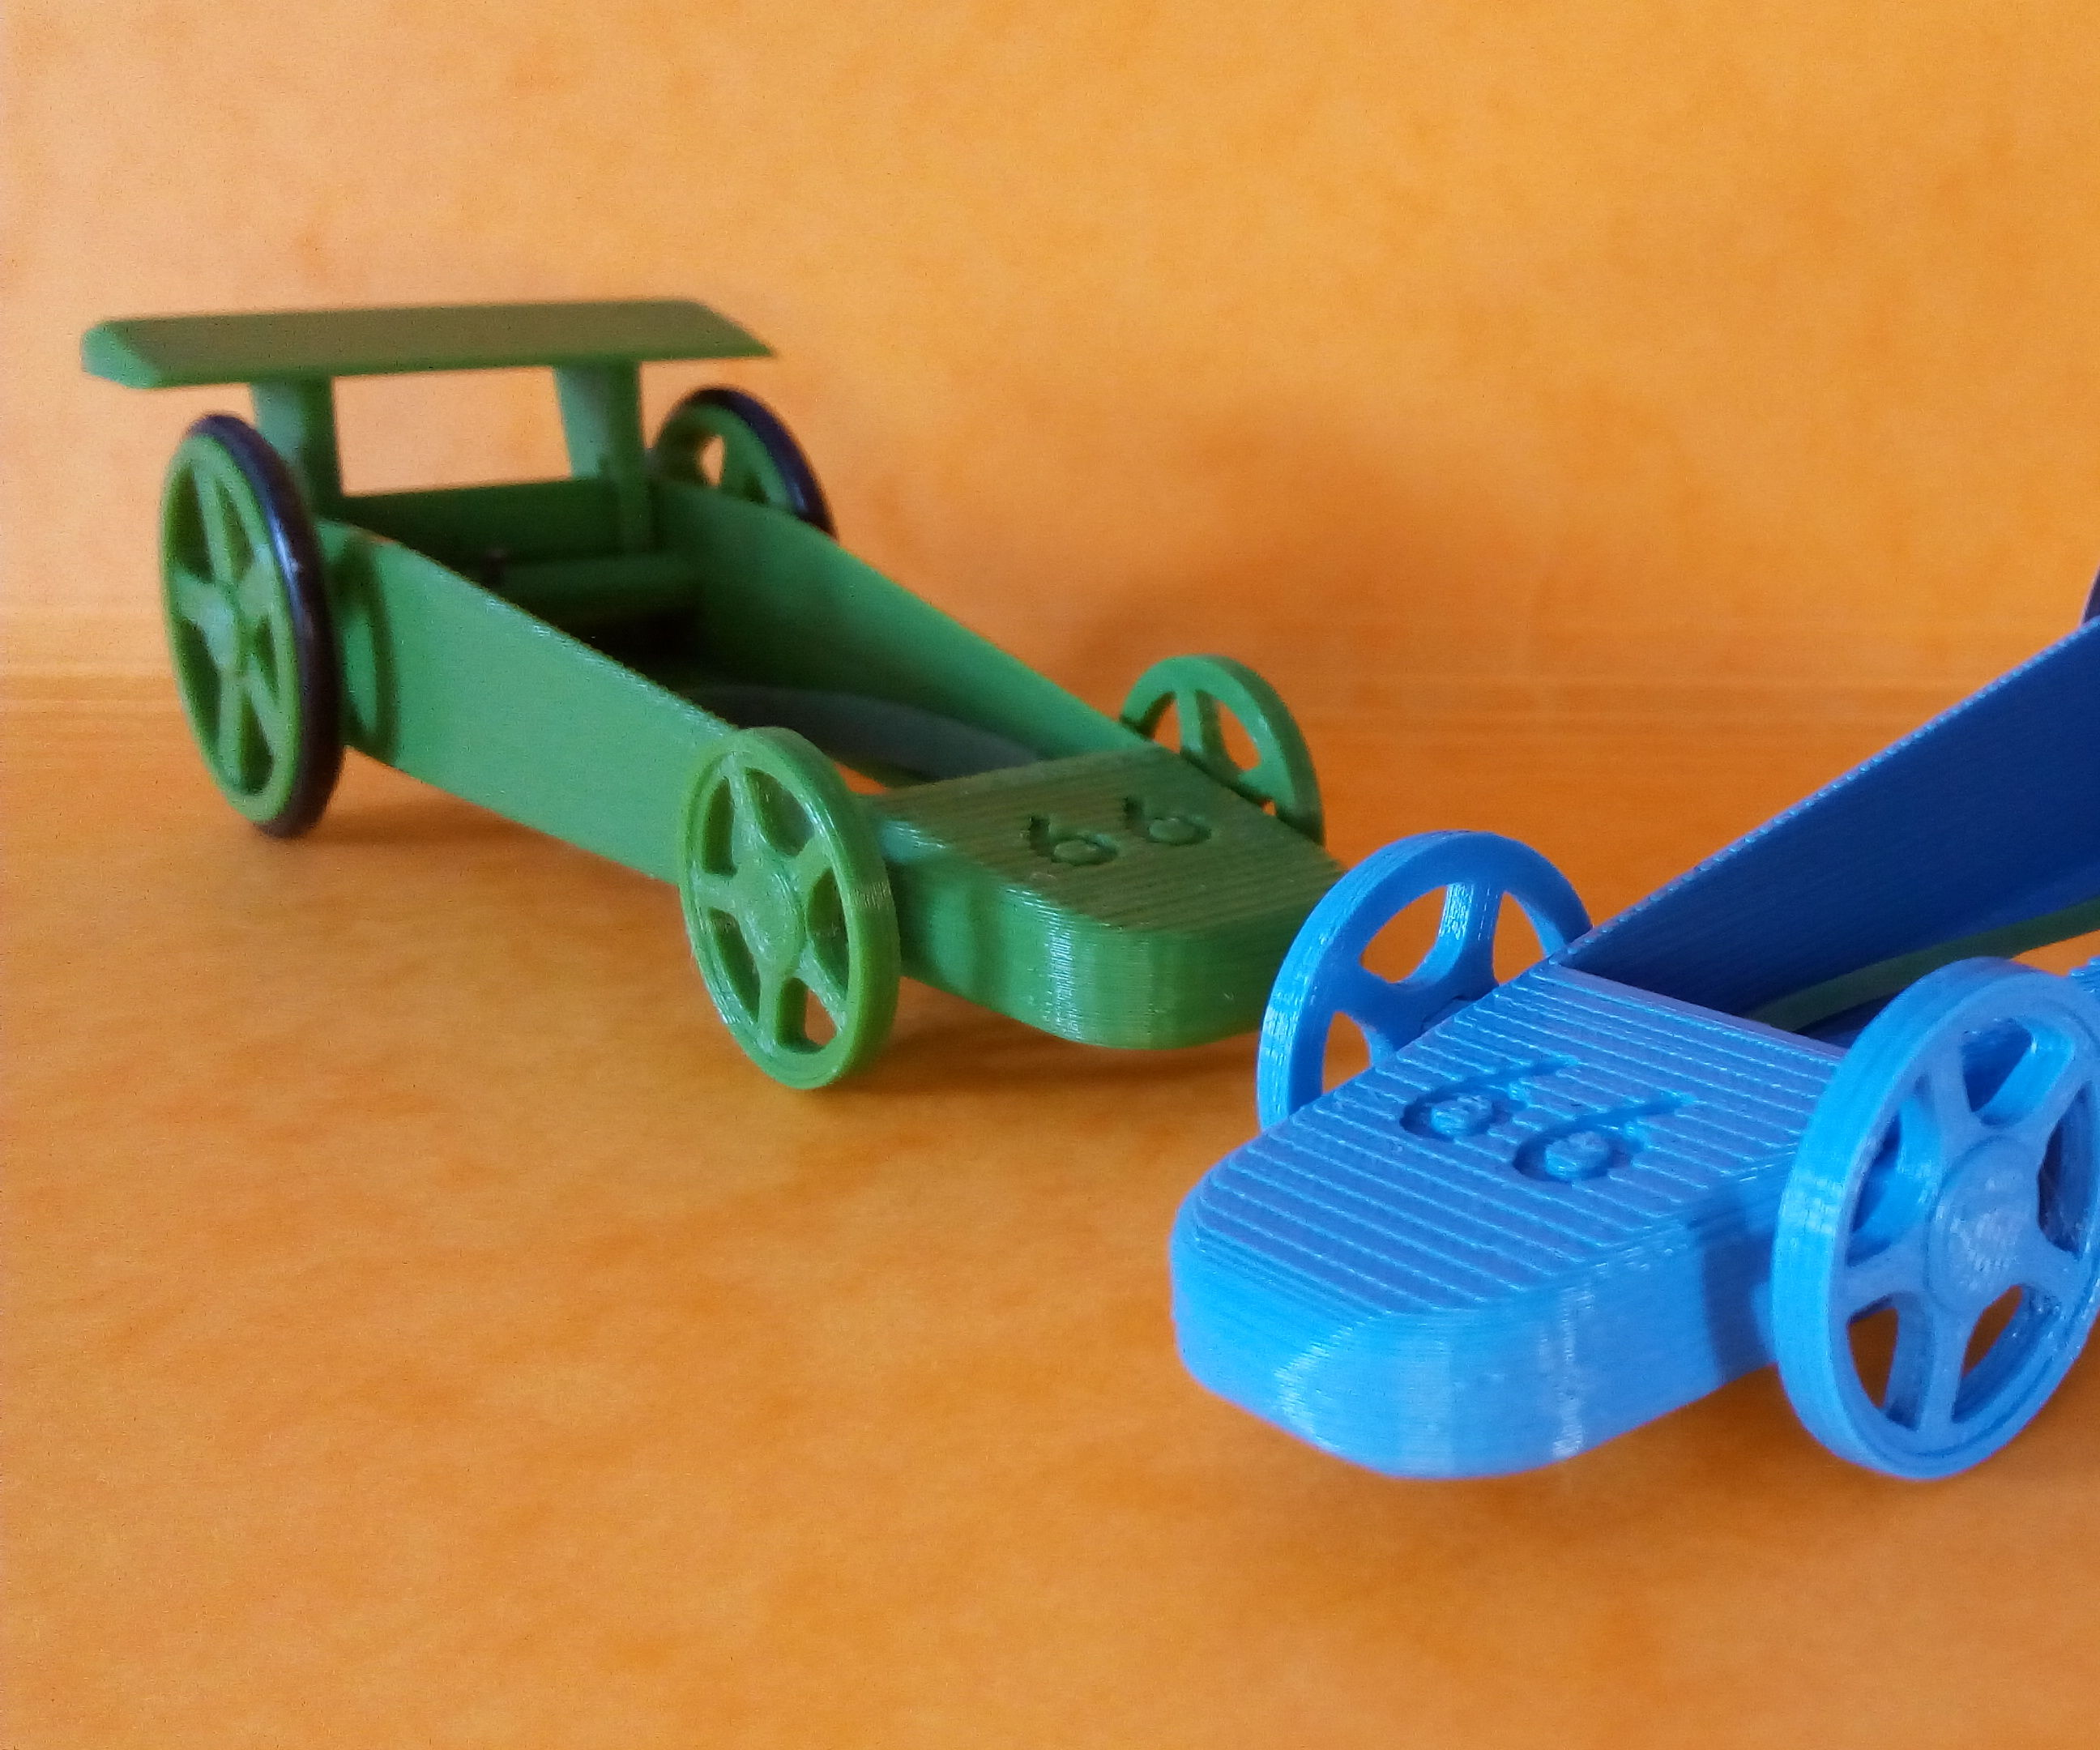 3D Printed Rubber Band Powered Car